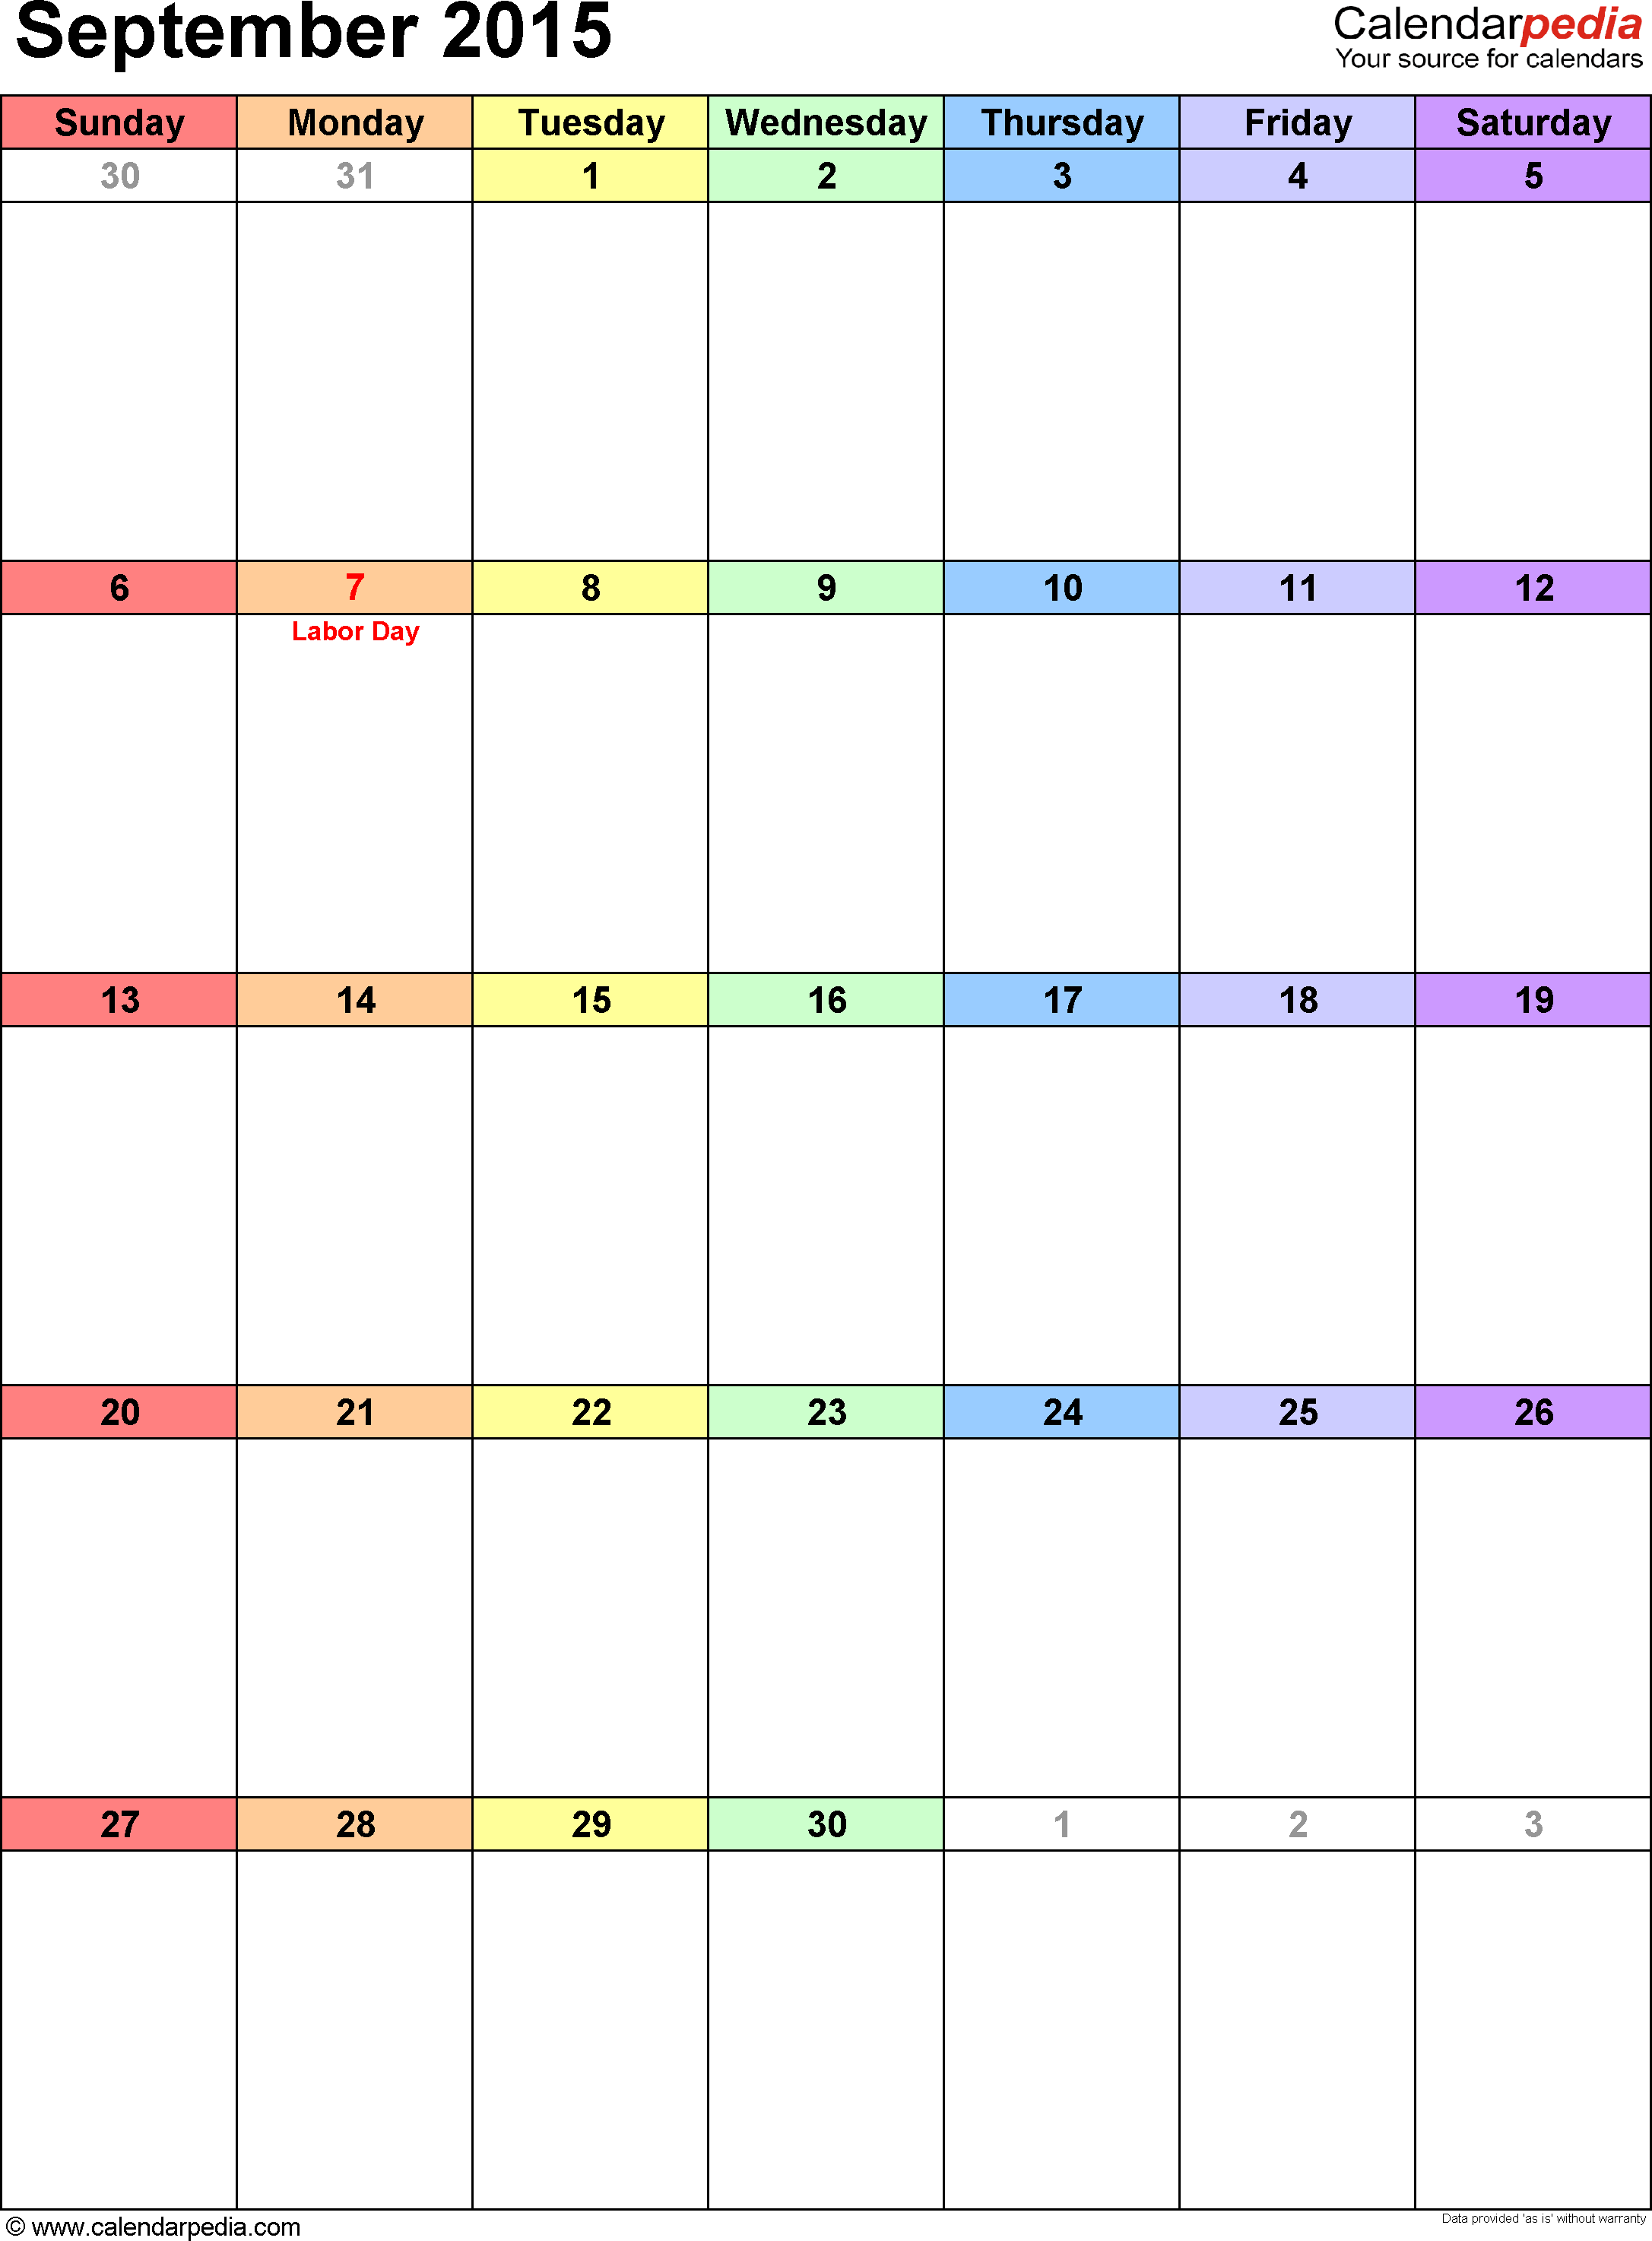 September 2015 calendar as printable Word, Excel & PDF templates